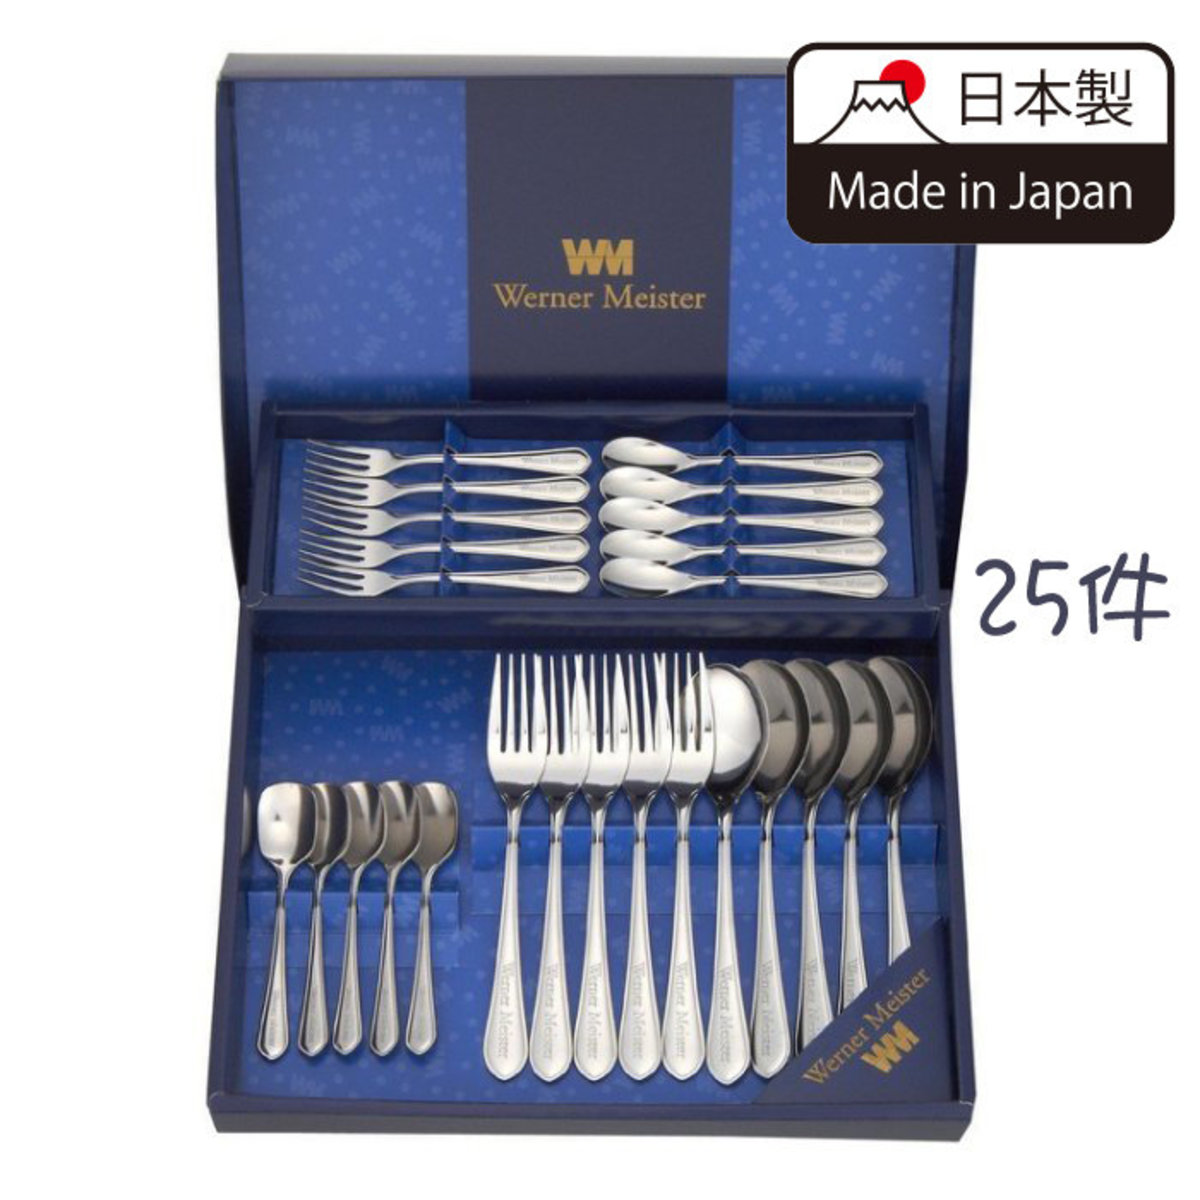 Japan Made Stainless Steel Cutlery (25-piece set)